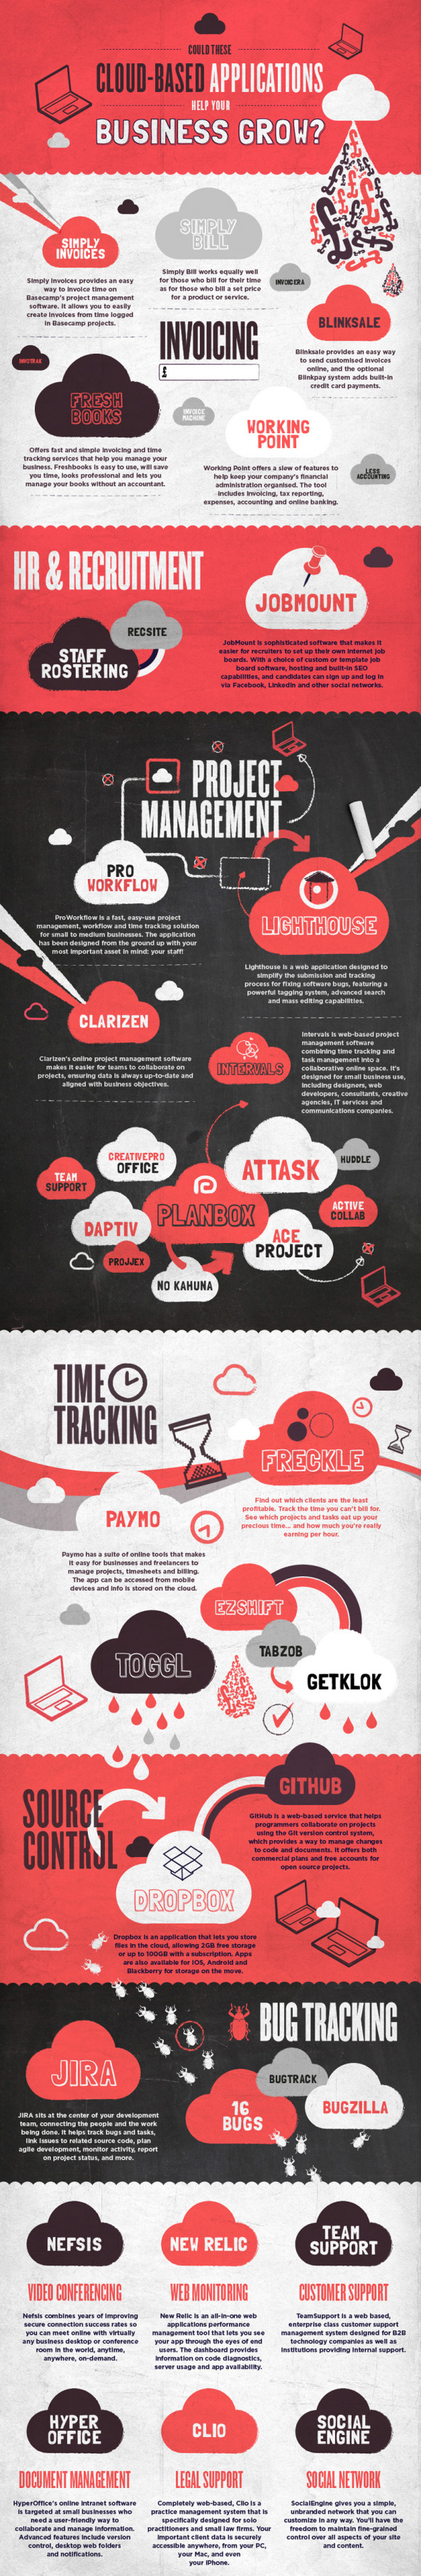 Could these cloud based applications help your business grow? Infographic